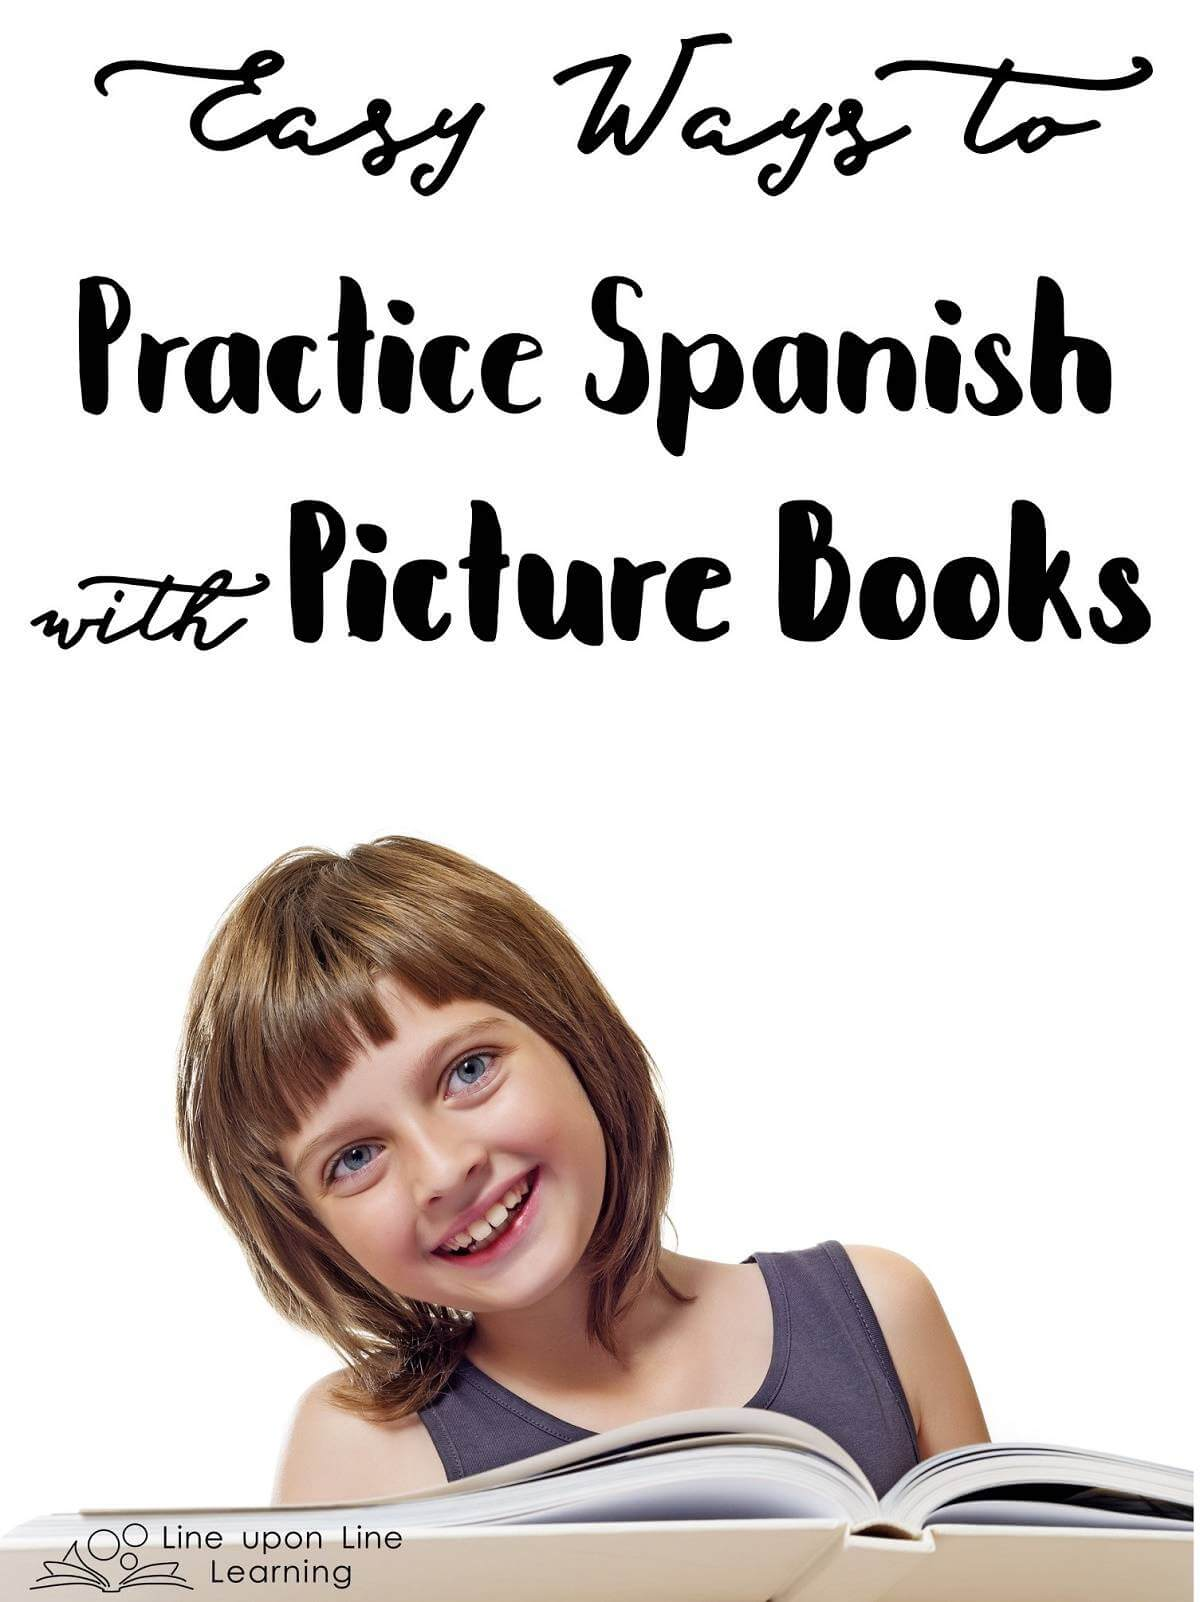 Reading Spanish picture books together gives us a chance to practice and learn new vocabulary and recognize grammatical structures of Spanish.